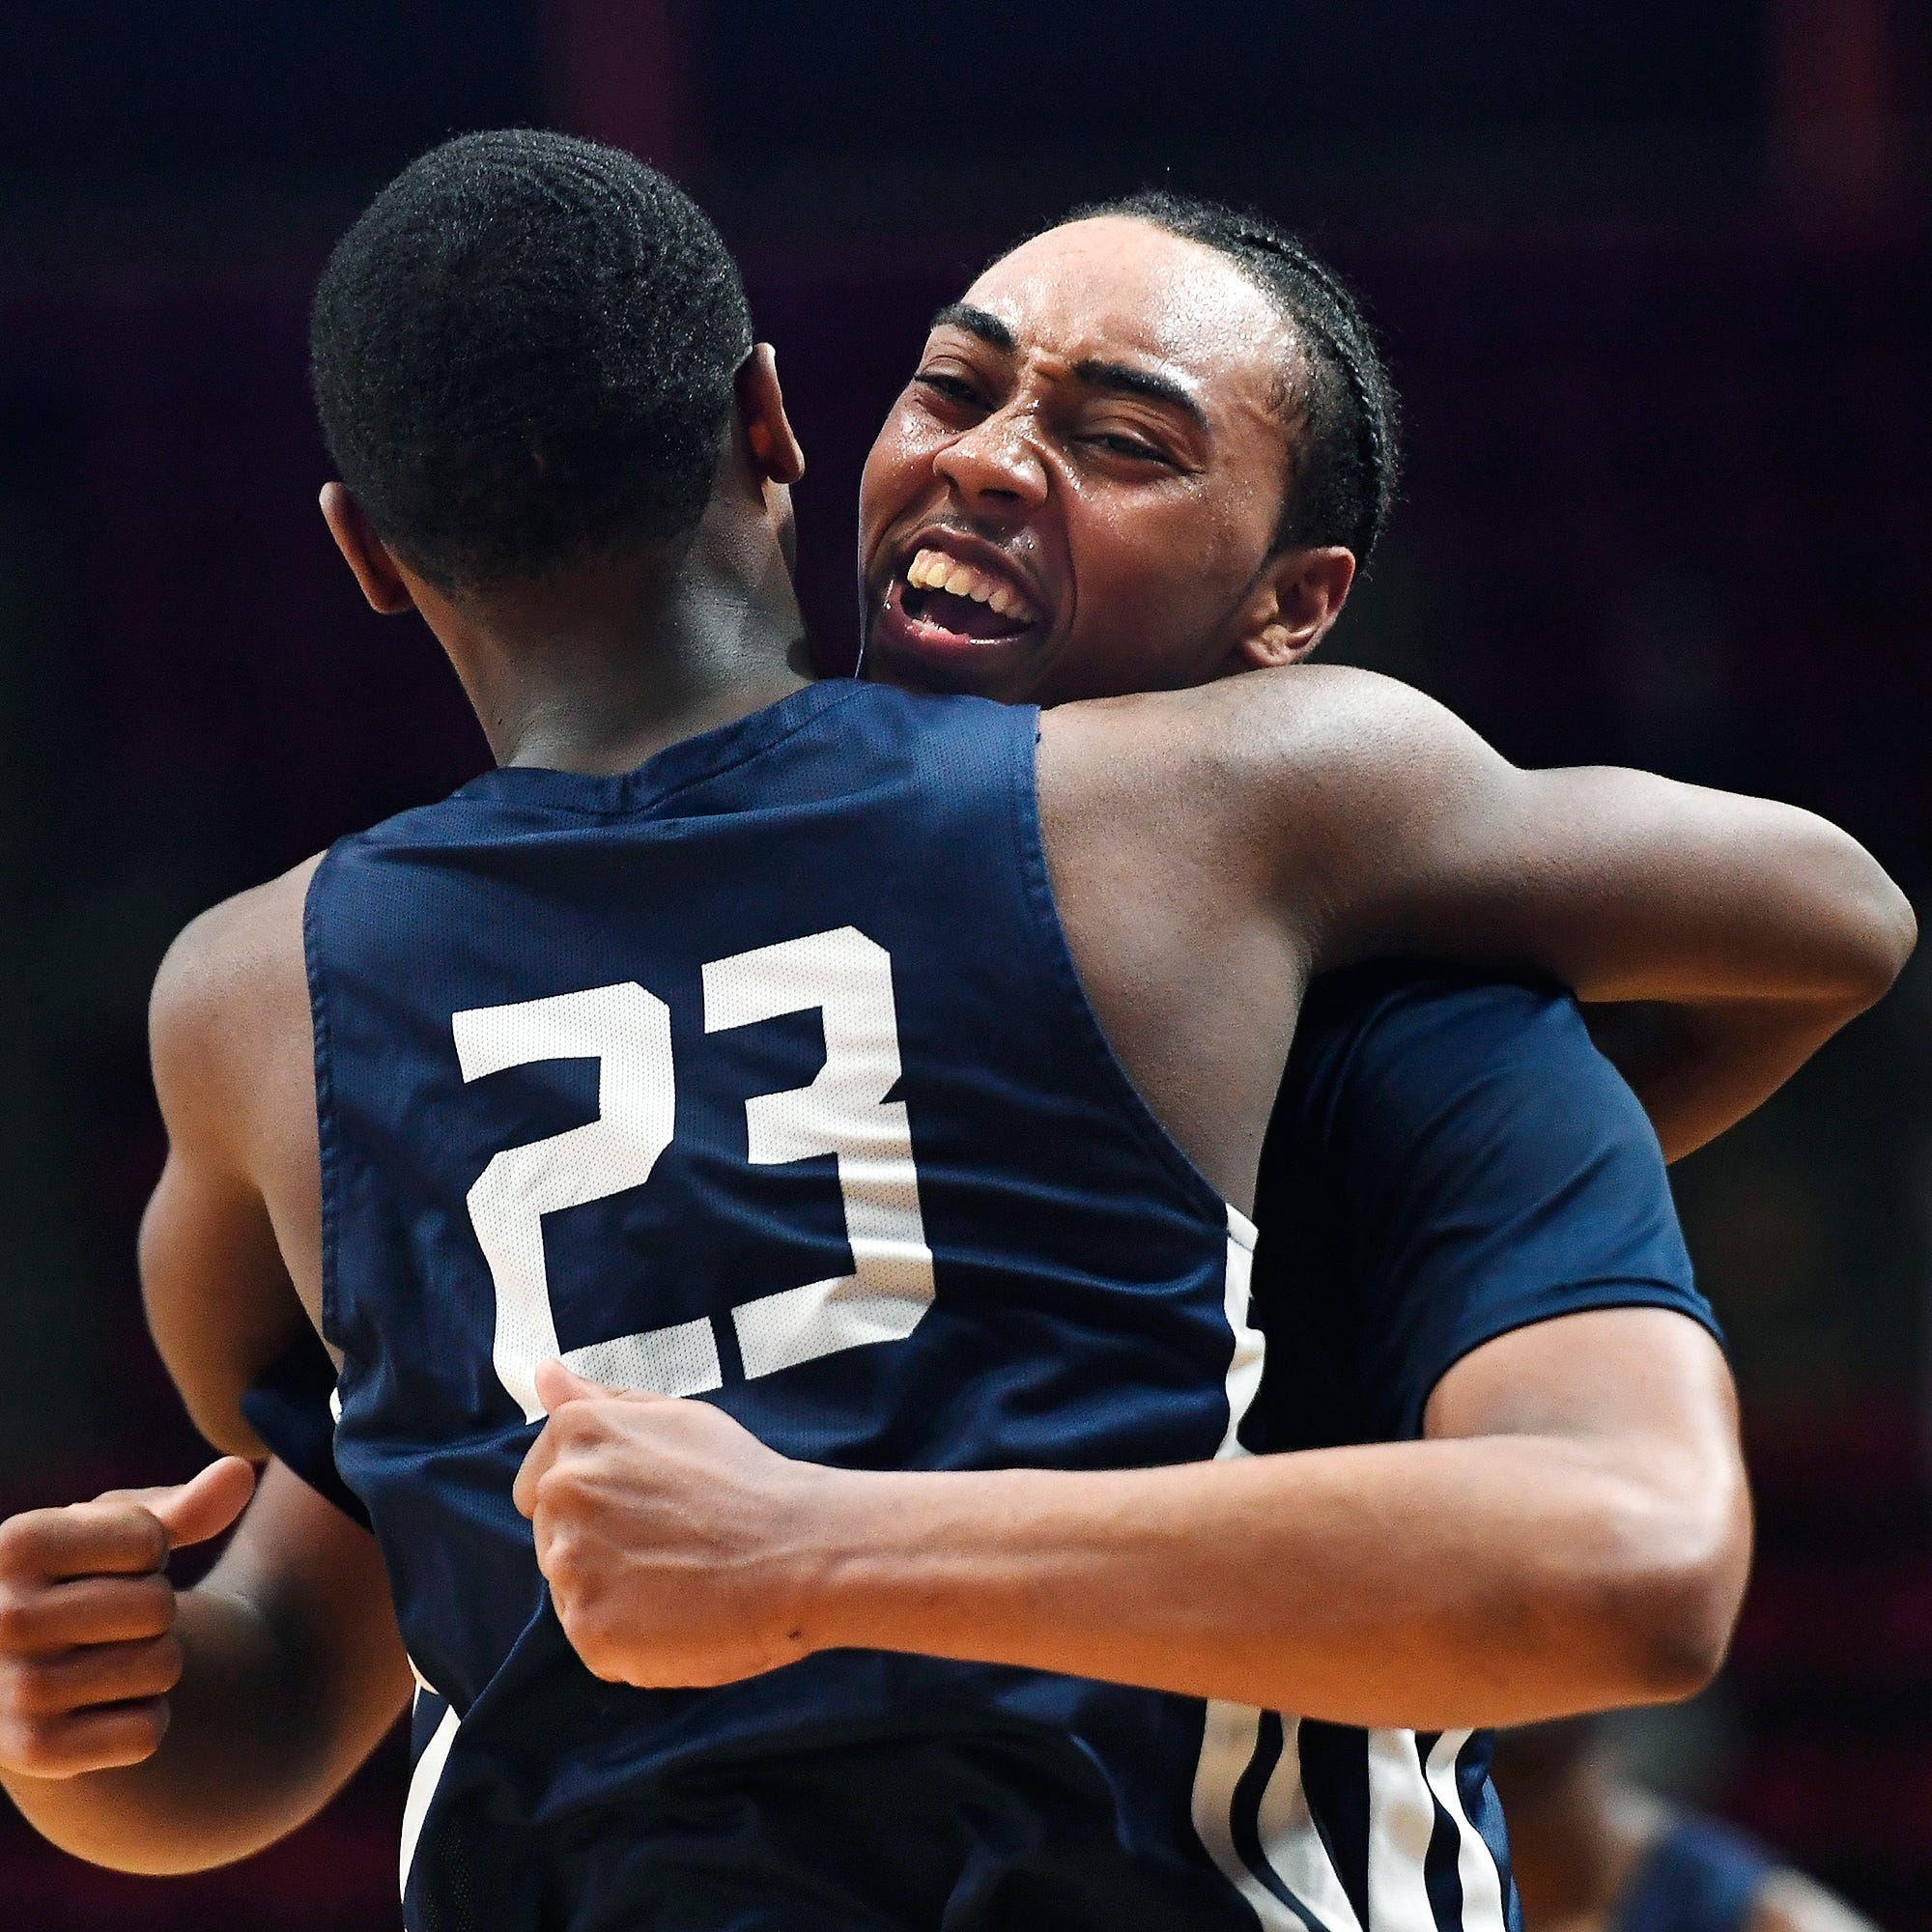 Thomas, Poughkeepsie reach basketball state final with win over Manhasset